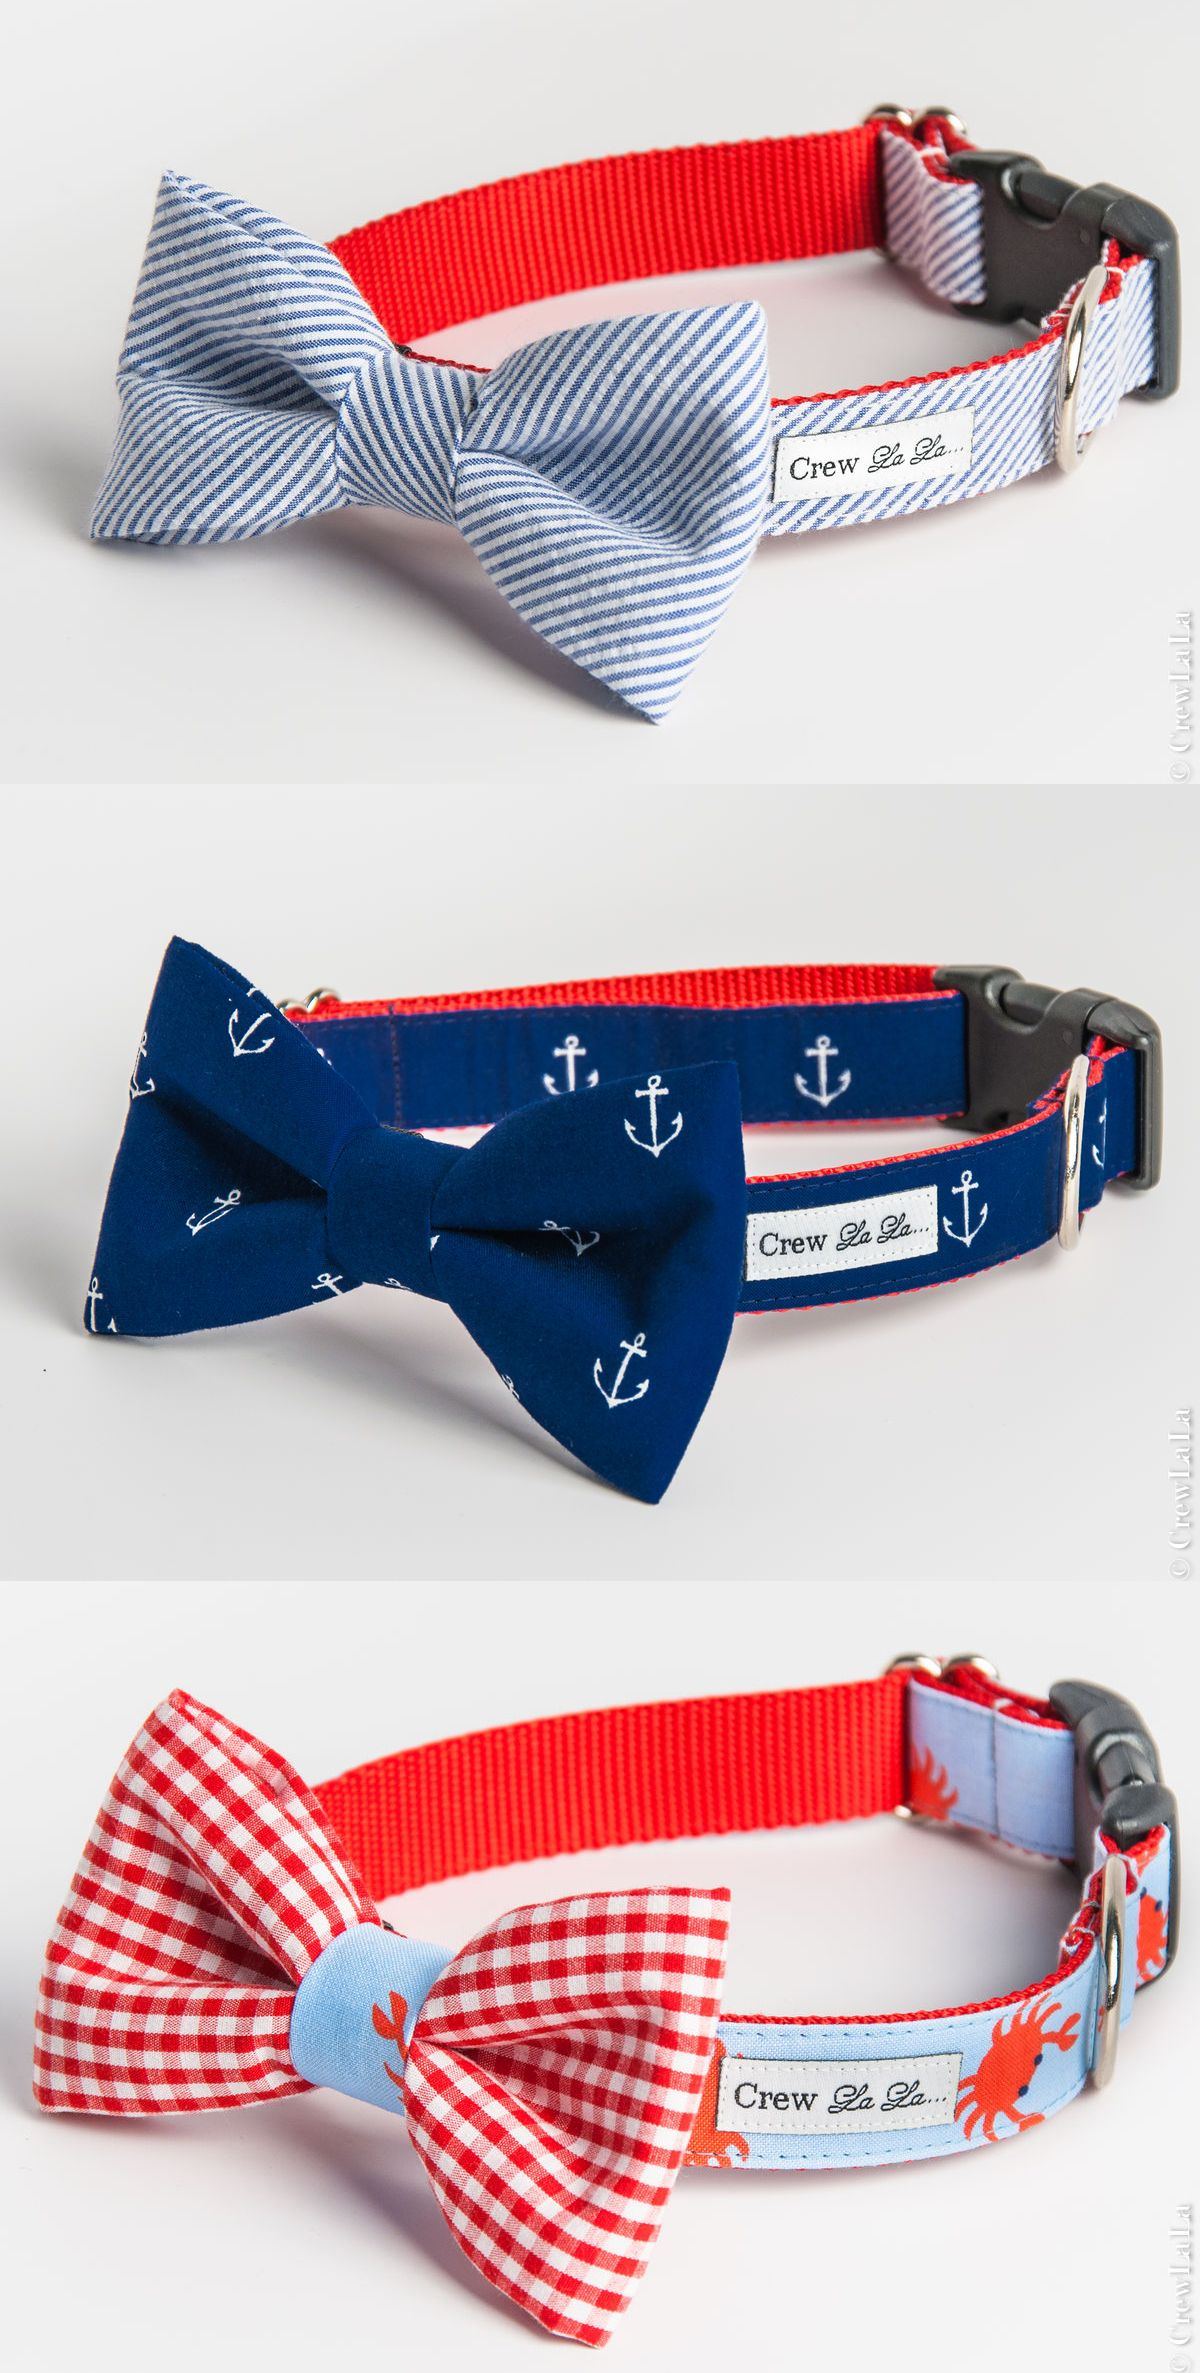 Must see Collar Bow Adorable Dog - 66781b112760e4631d01d51c4dbfa3b2  Collection_403828  .jpg